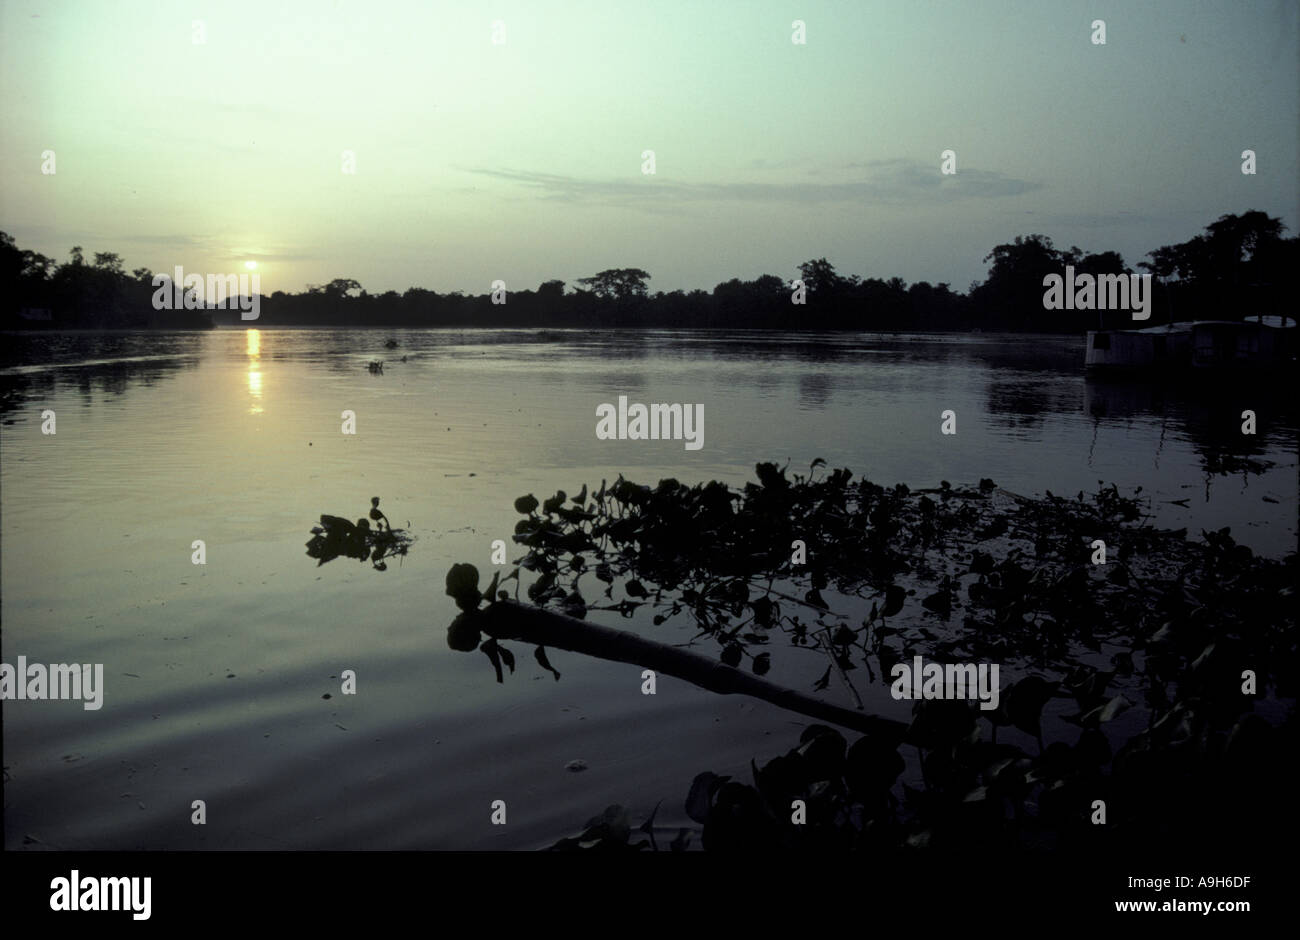 Rivers American Sth River Amazon Brazil sunrise set - Stock Image